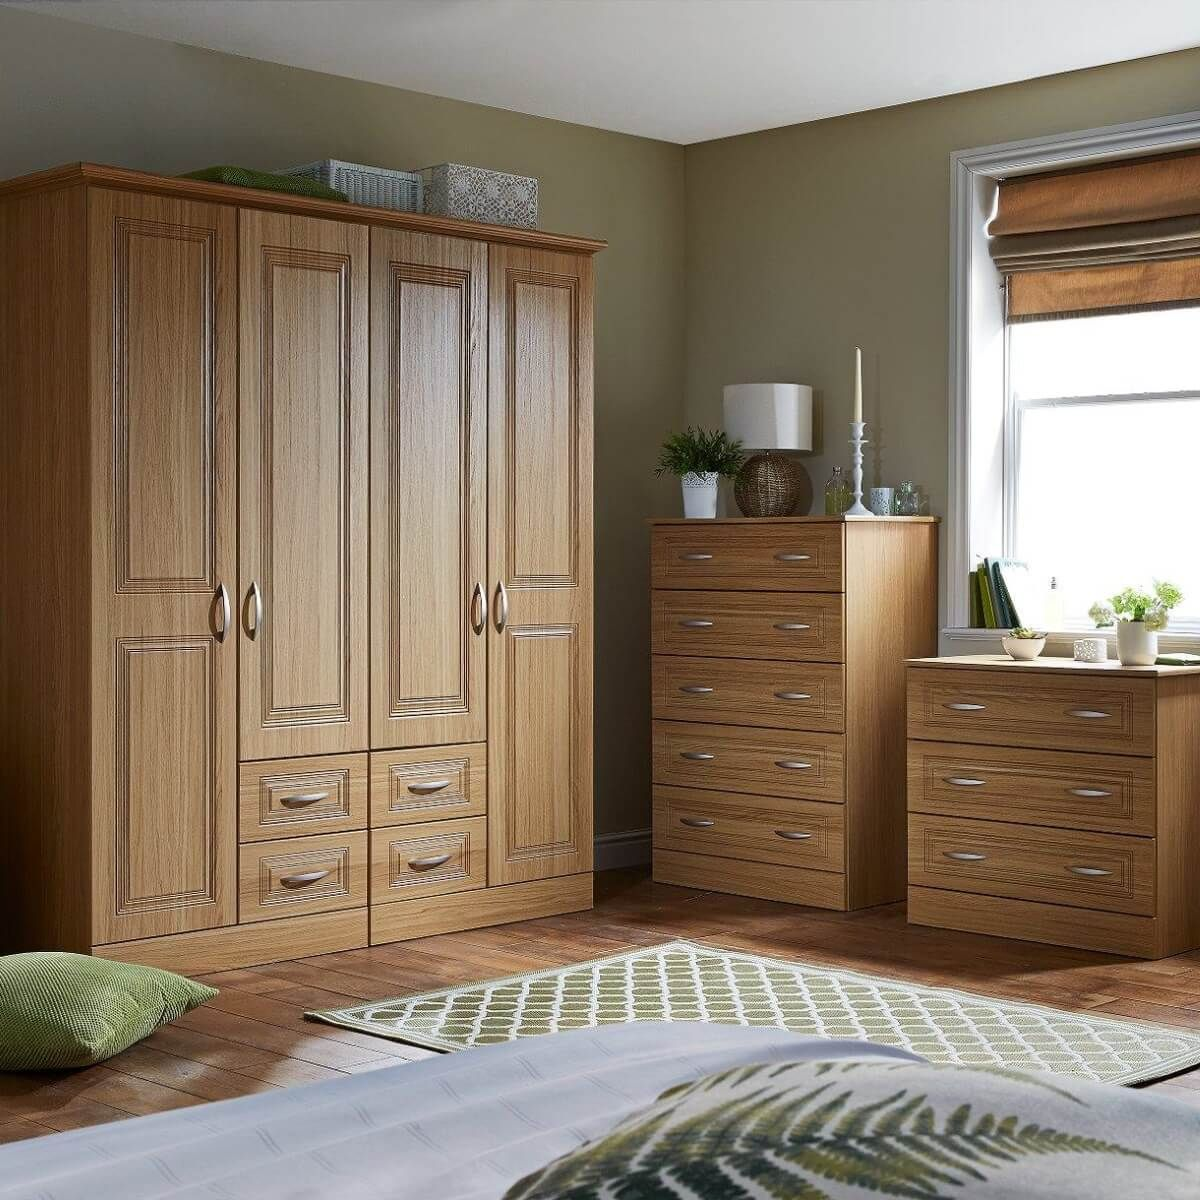 Dorchester Bedroom Furniture - Best Interior Paint Brand Check ...